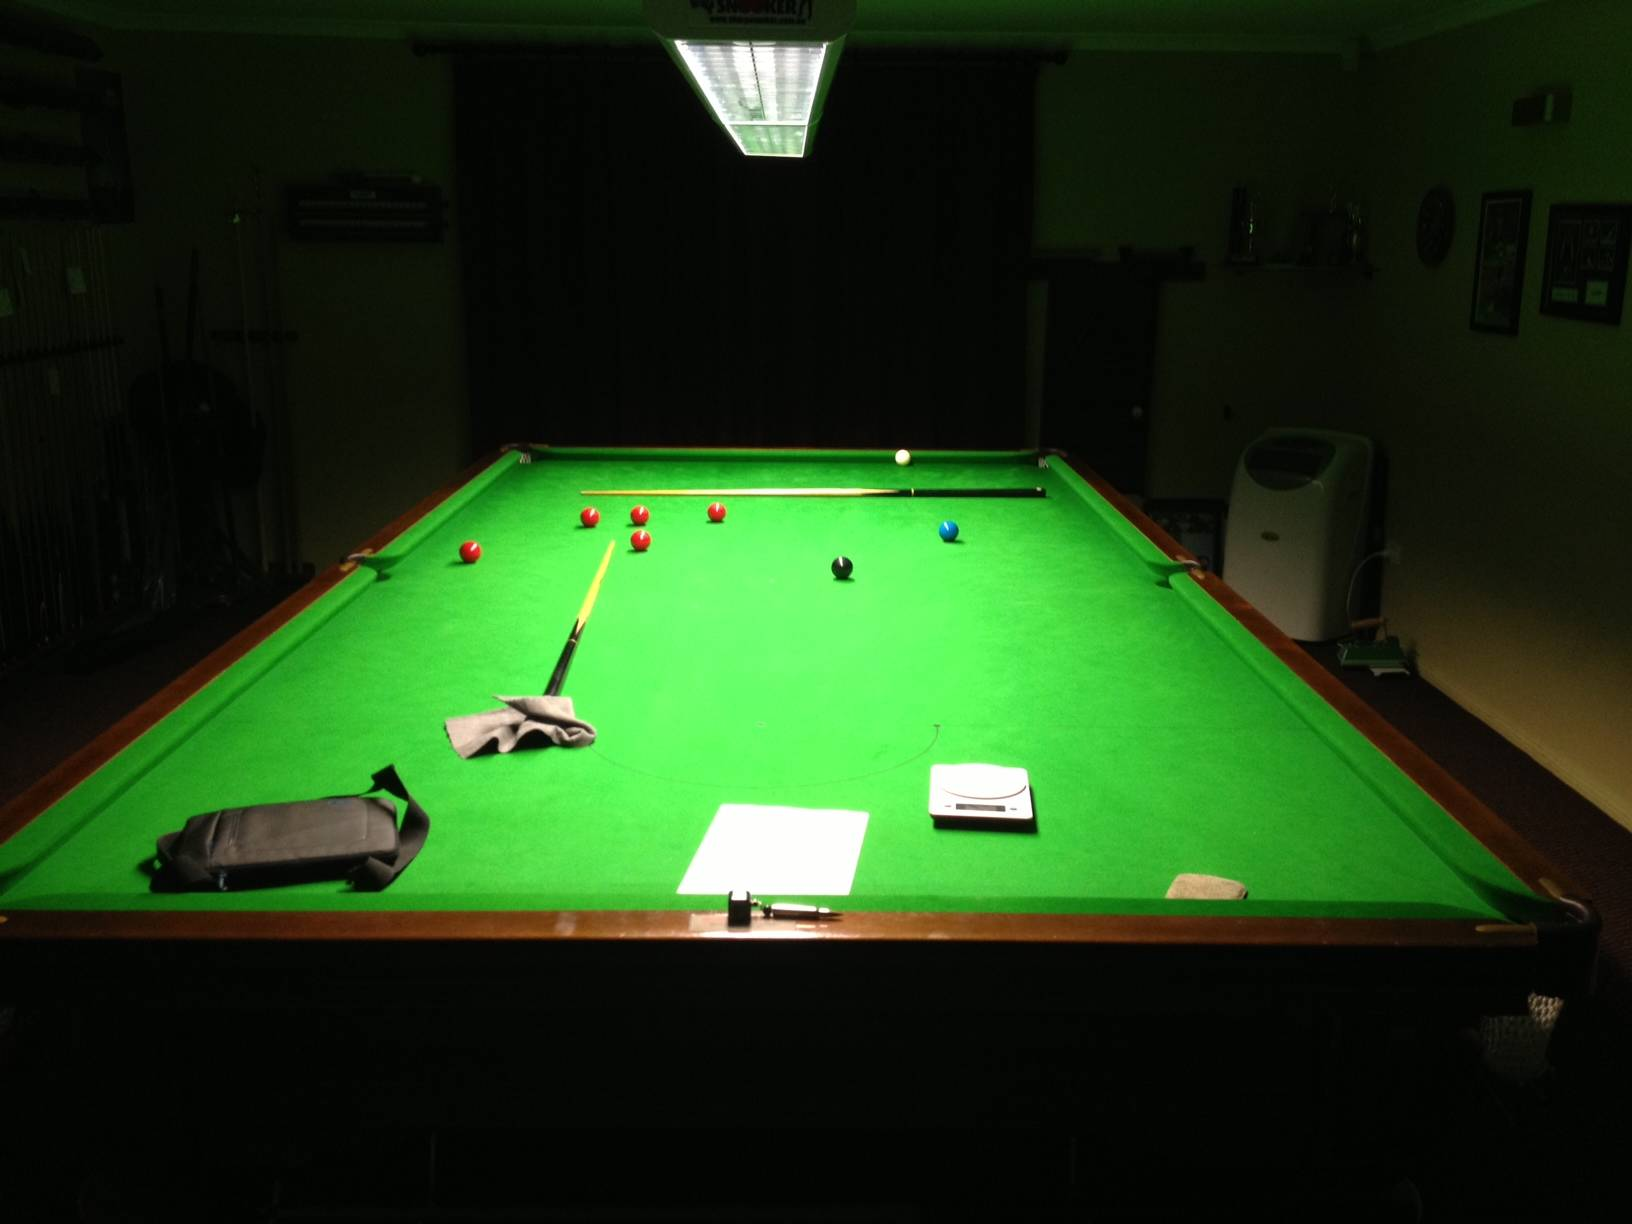 pool snooker br makro eaa operated lowest table online specials prices coin min